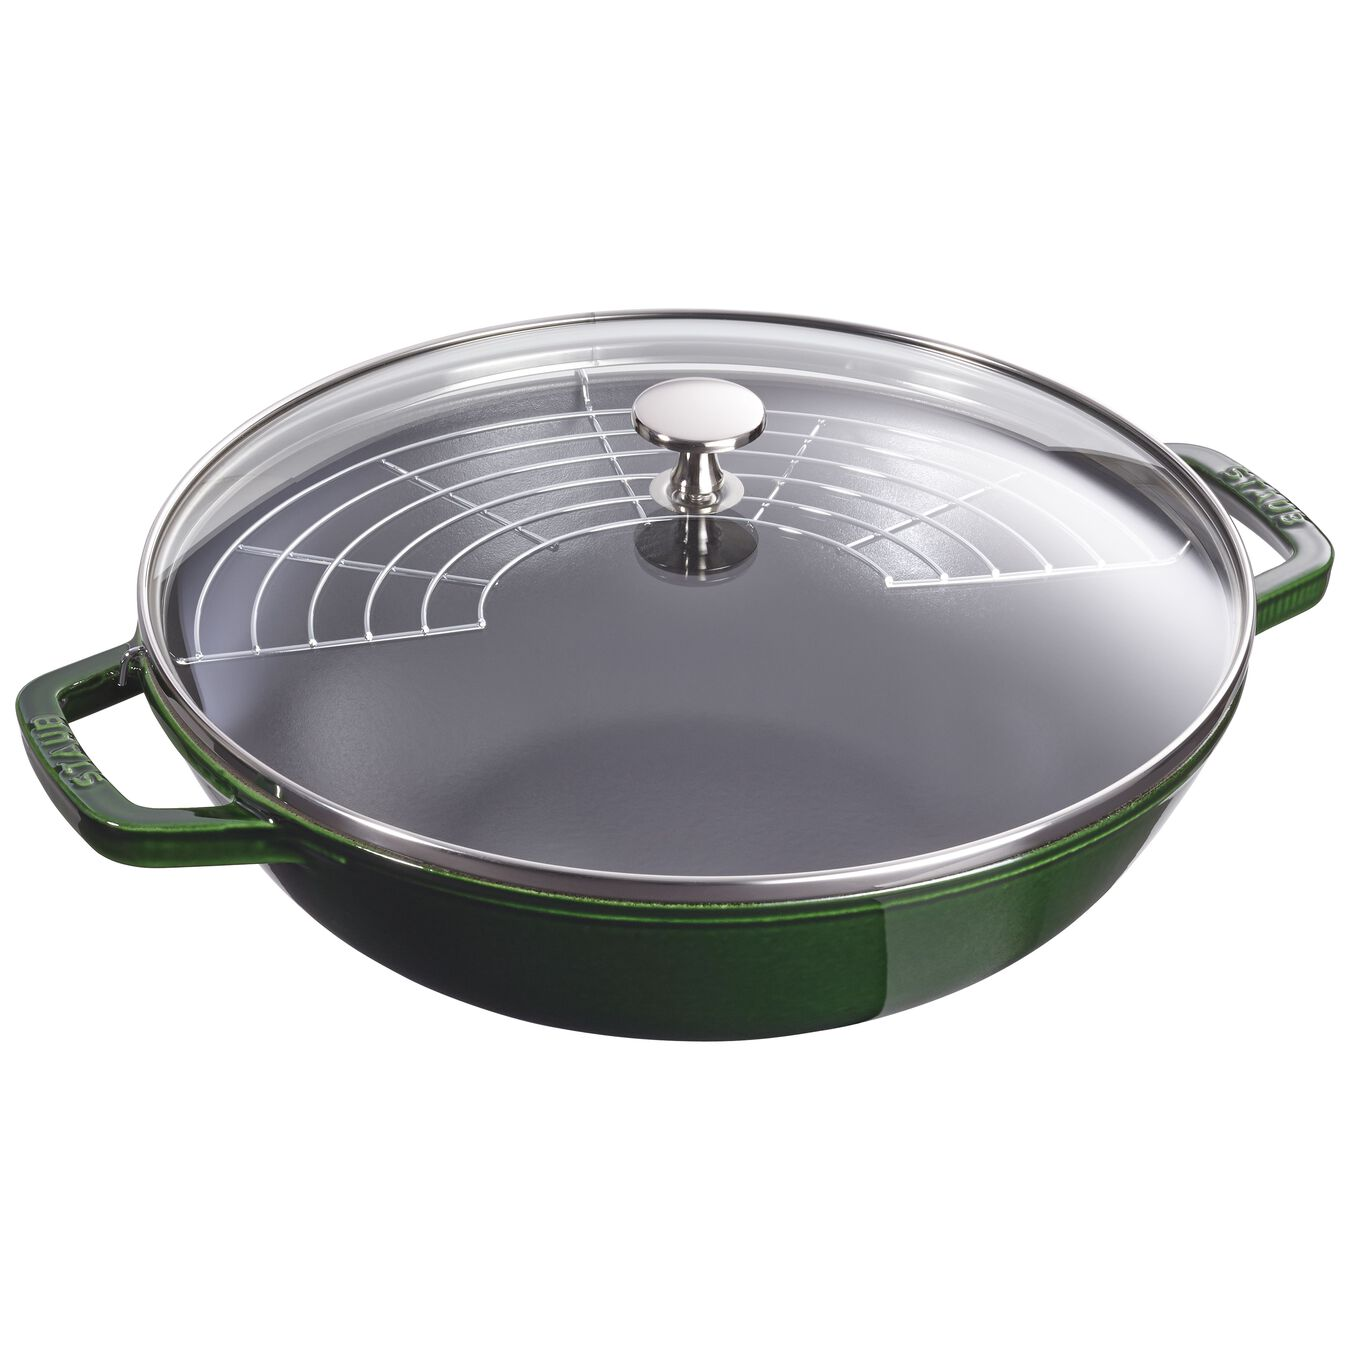 Wok with glass lid 30 cm,,large 1